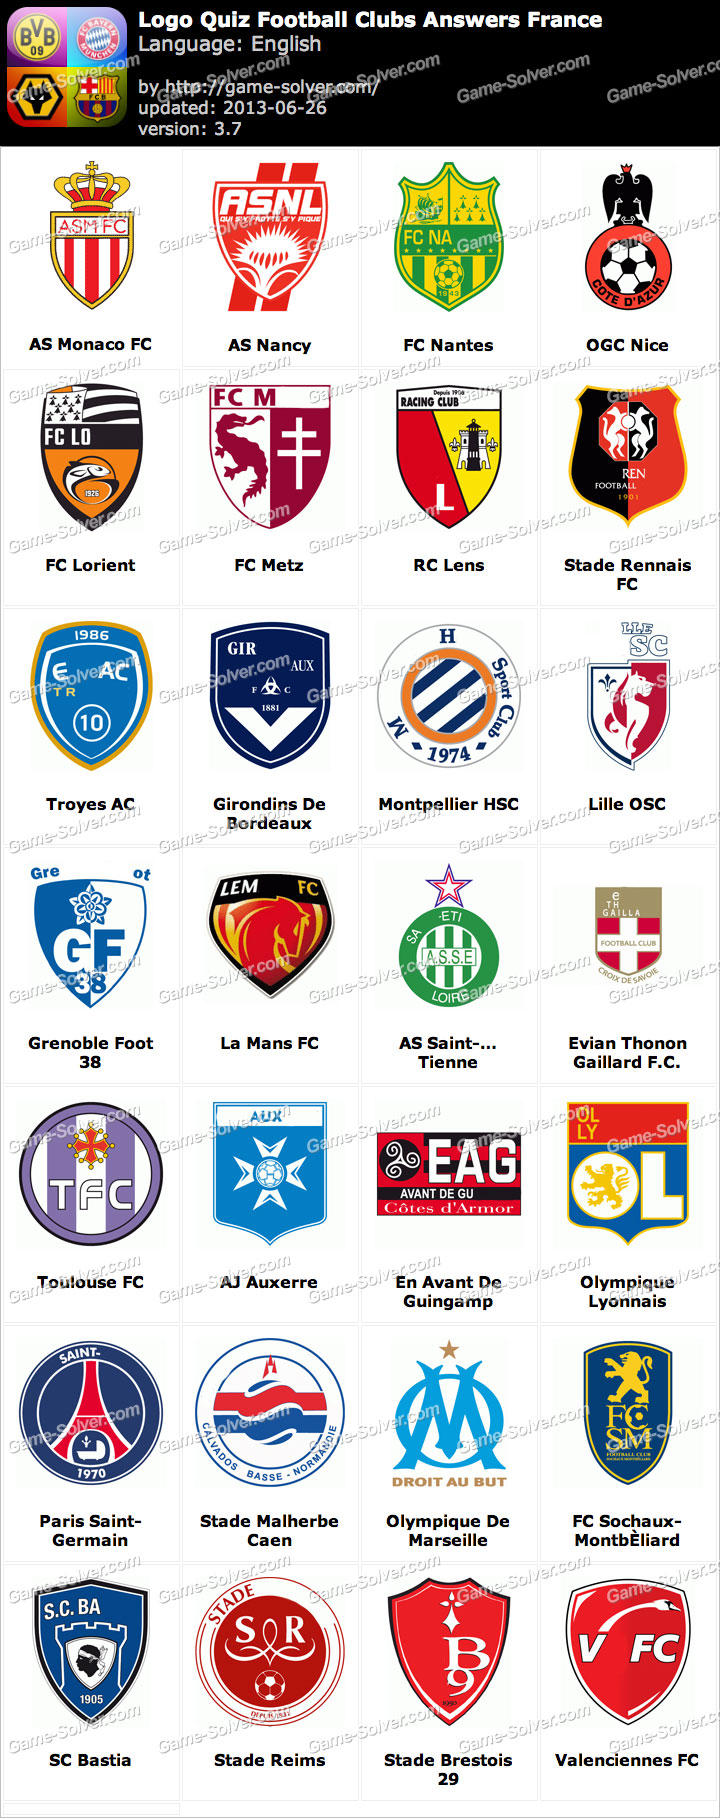 Logo Quiz Football Clubs Answers France.